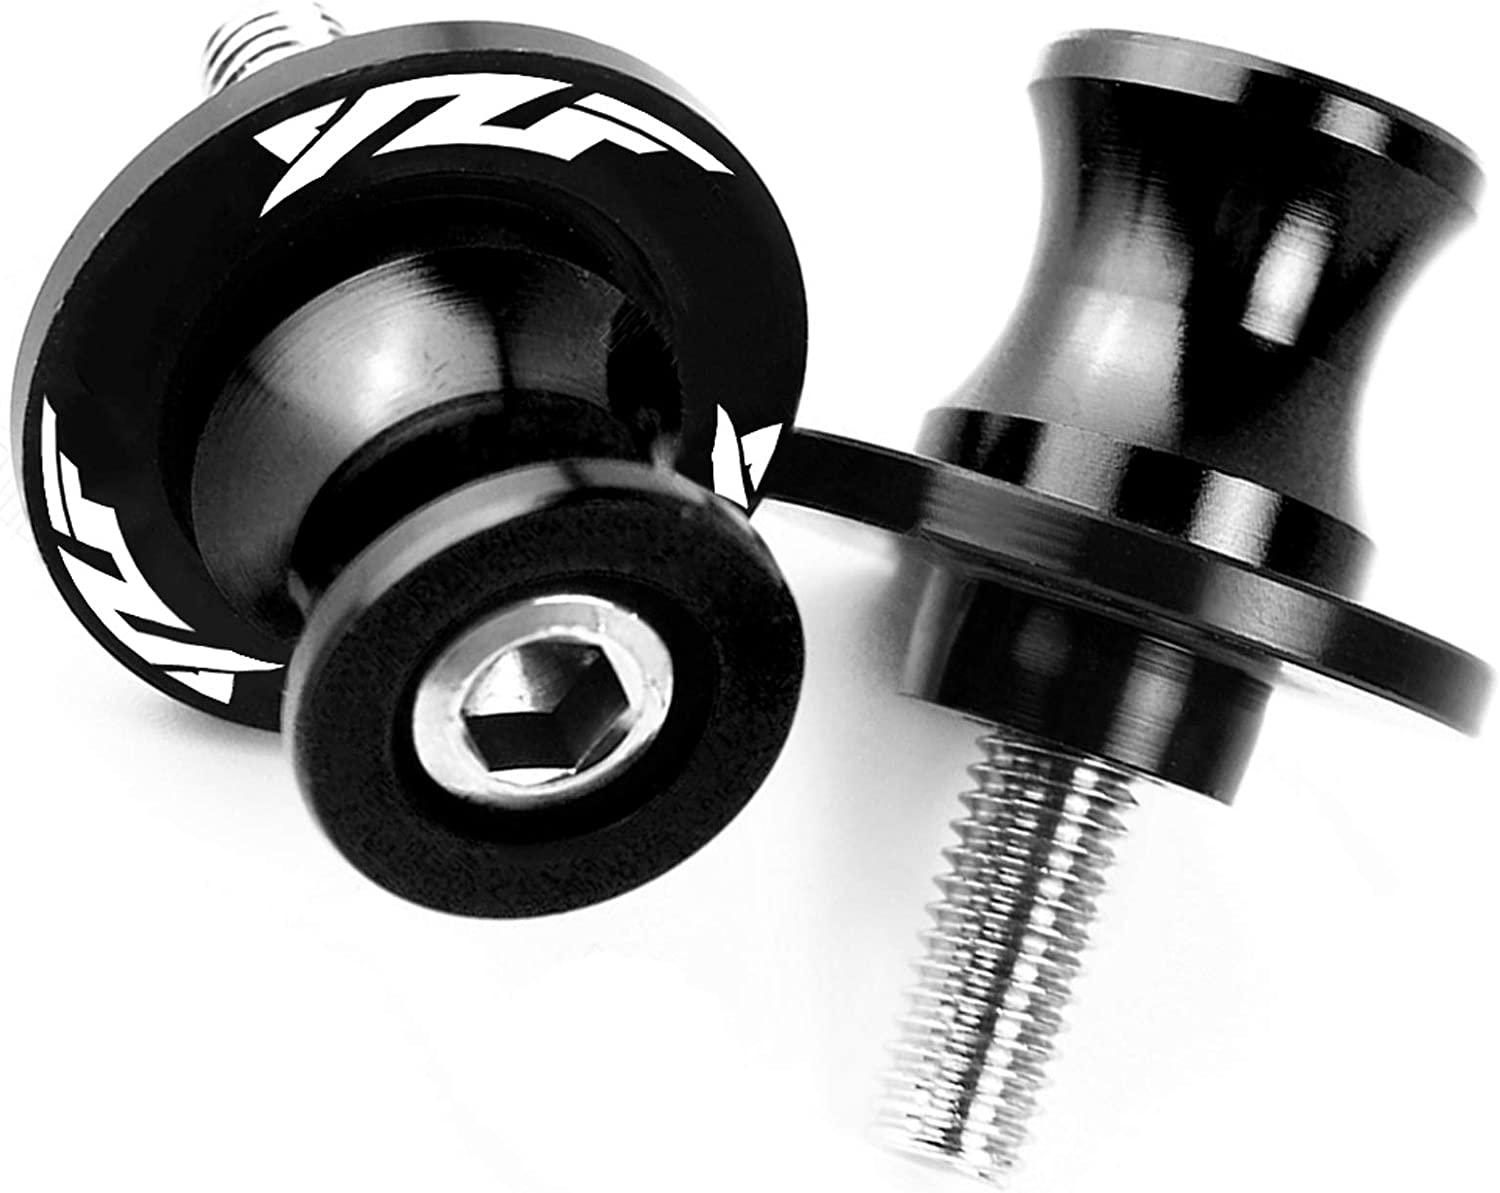 M6 Motorcycle Accessories CNC Aluminum Swingarm Spools Slider Stand Screw For Yamaha YZF R1 R3 R6 R25 R1000 Blue